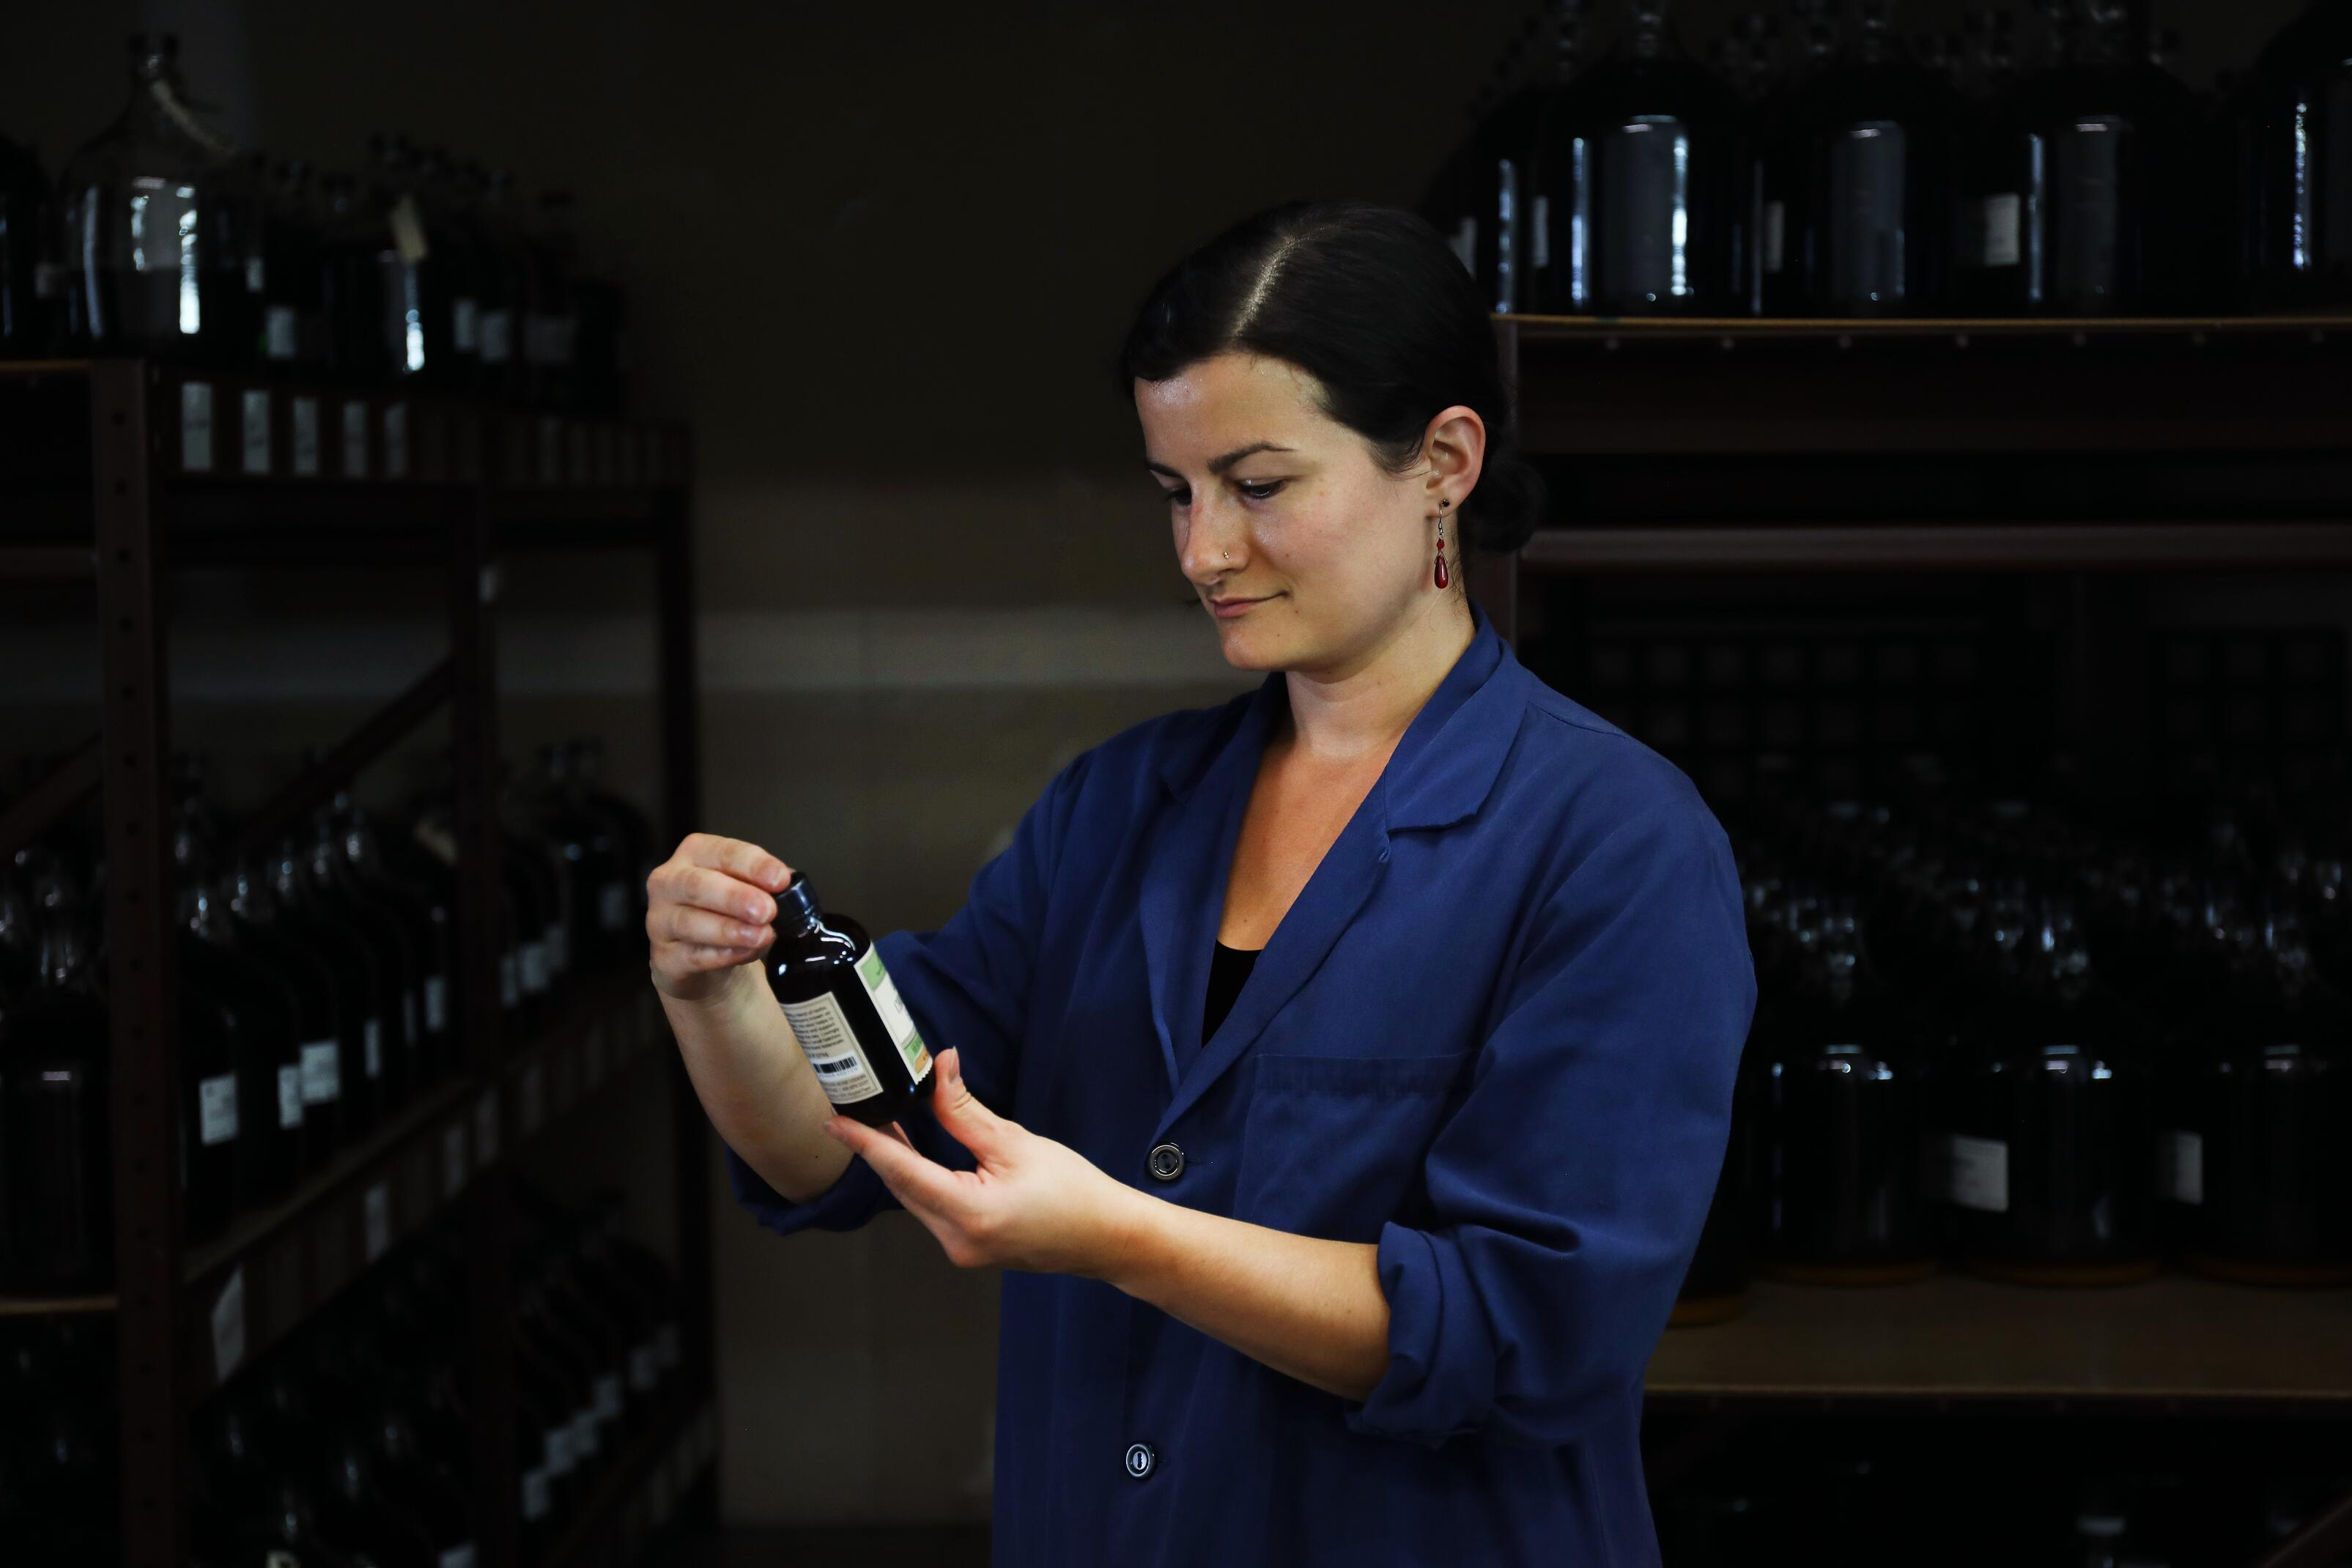 Shay inspects a completed bottle of elderberry syrup. She is in a room filled with shelves of large glass jars holding various herbal mixtures.